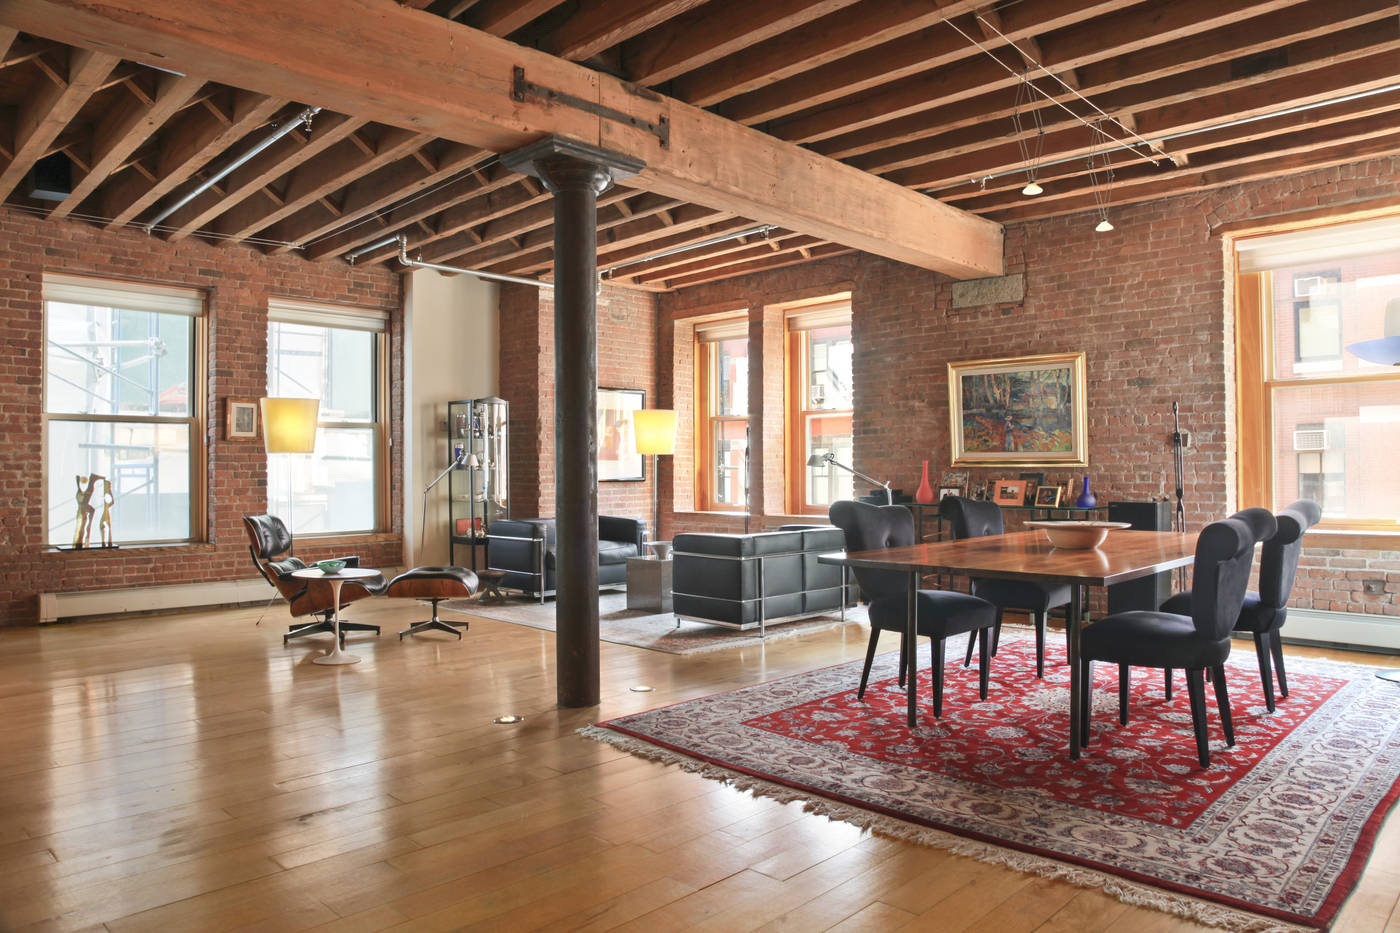 Orlando bloom tribeca loft celebrity homes for sale for Tribeca property for sale